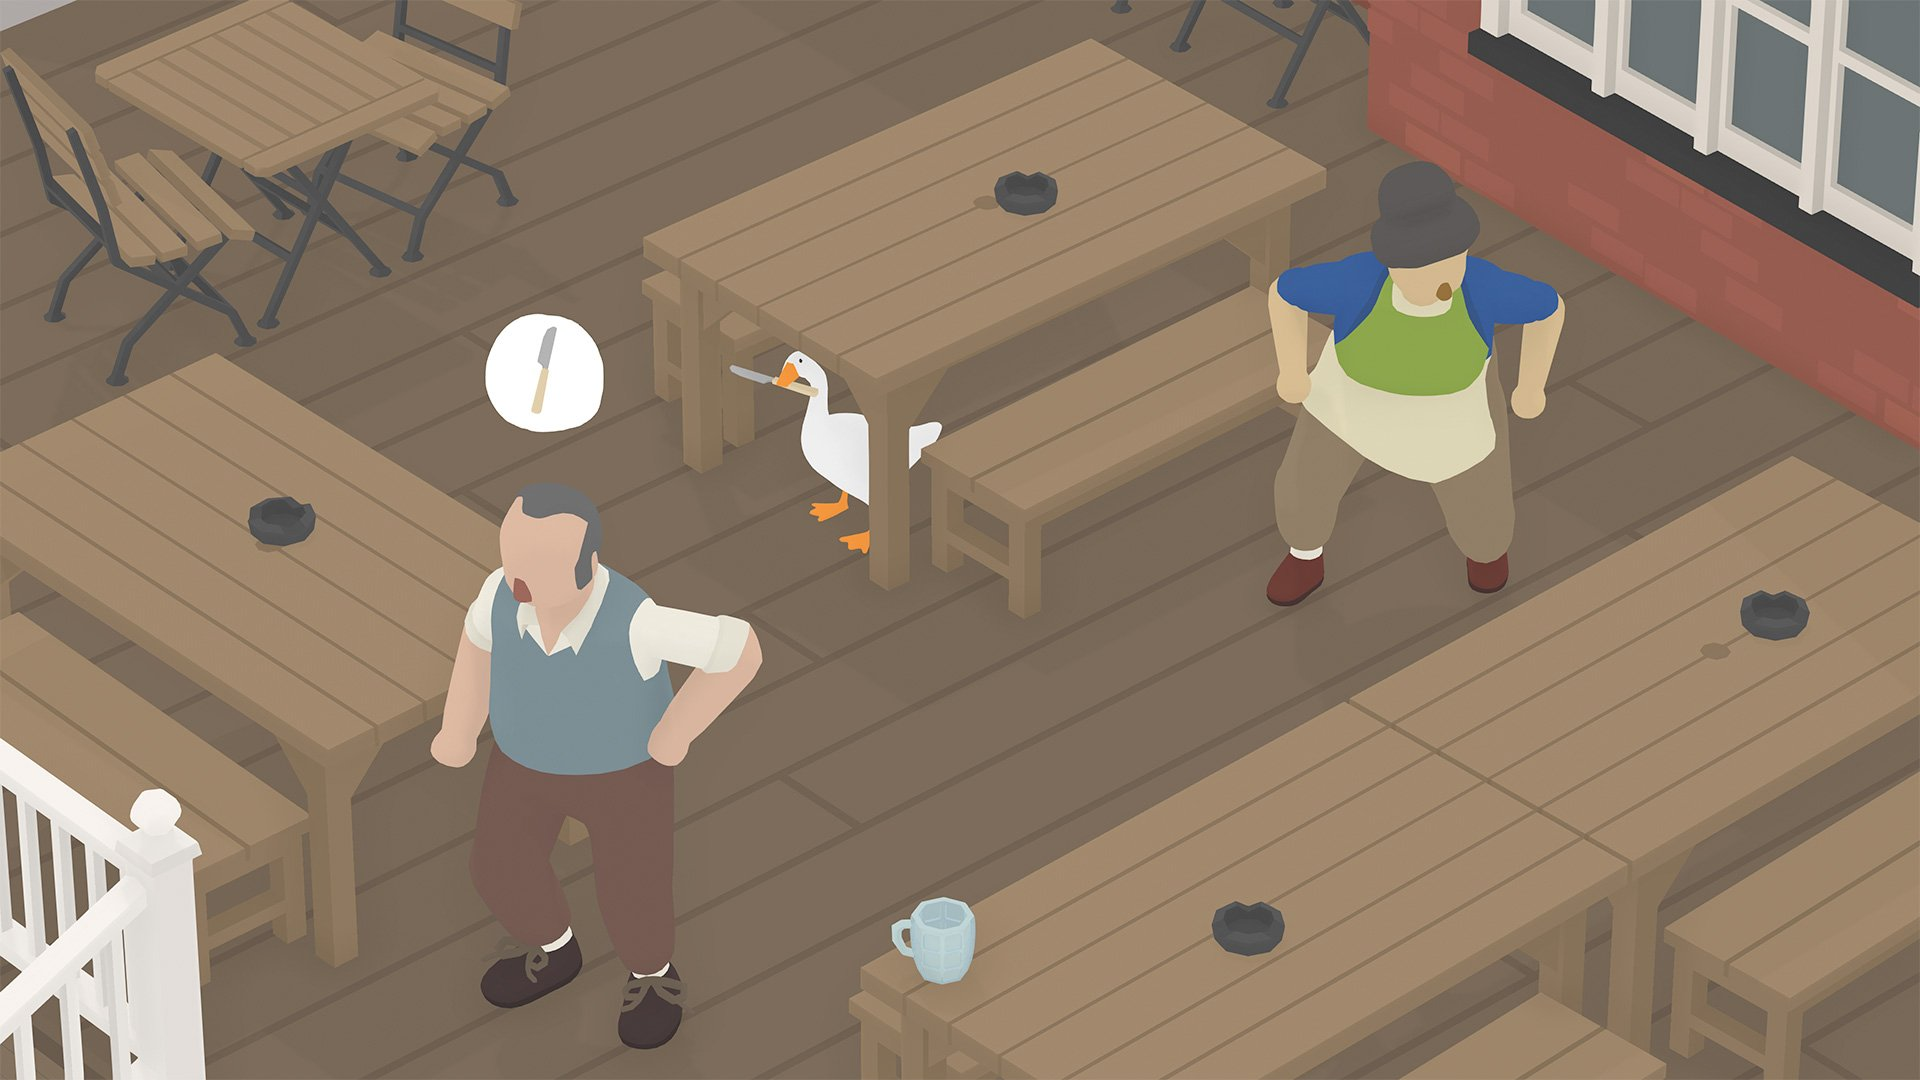 Human-pestering sim Untitled Goose Game lands on Switch and PC in September screenshot